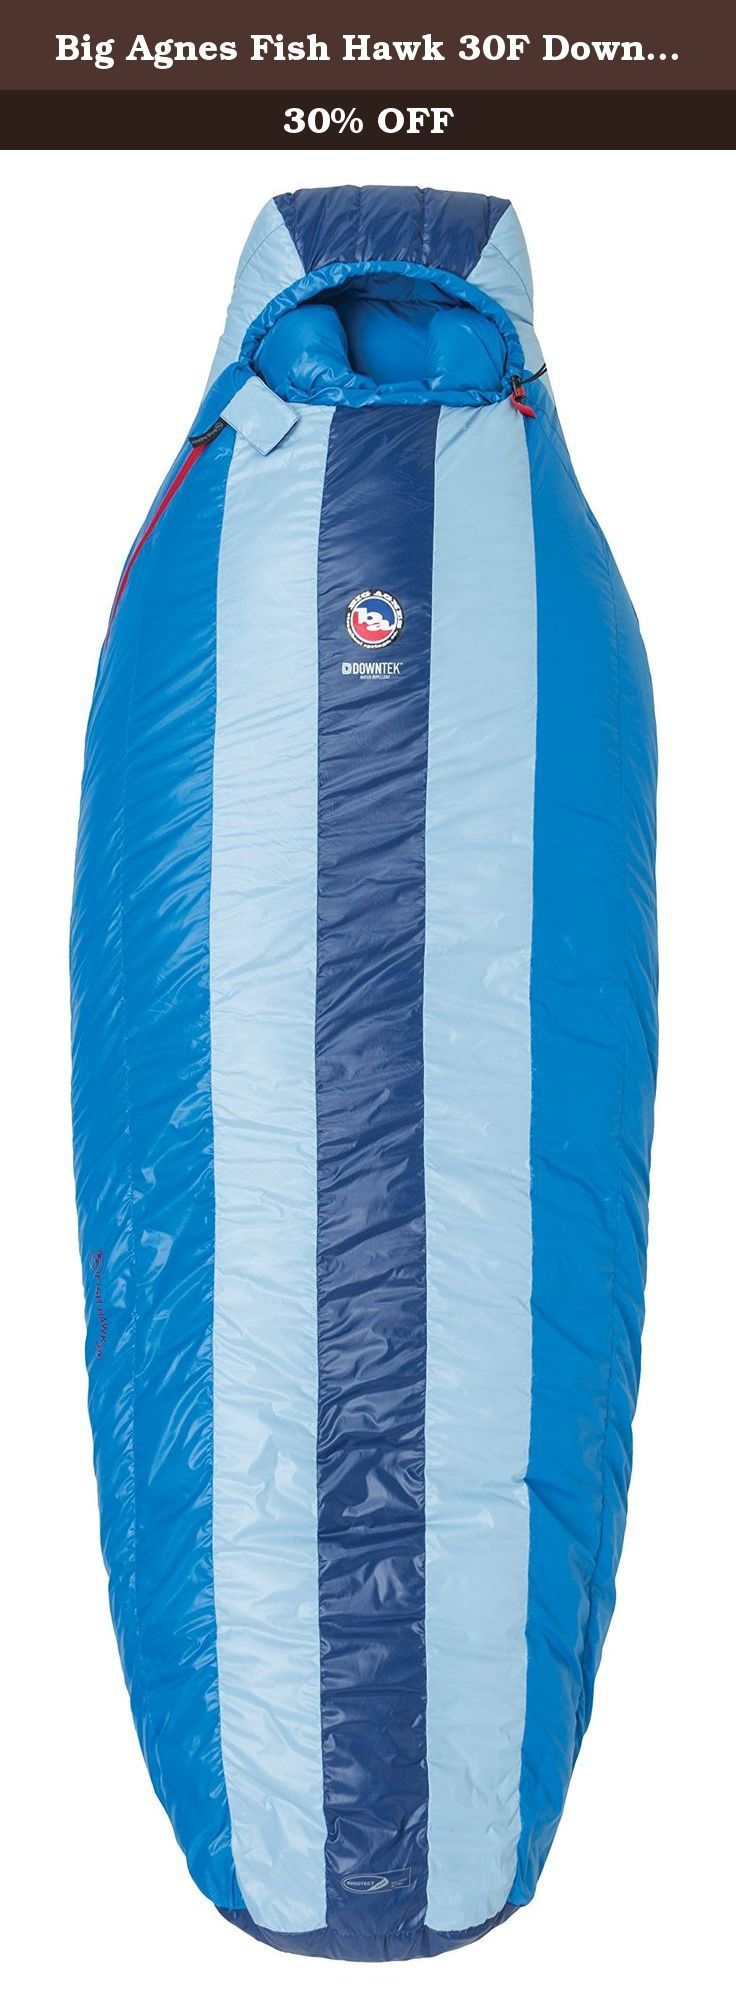 Big Agnes Fish Hawk 30F DownTek Sleeping Bag (Regular / Left Zip). Updated for 2015, the Classic Down series offer warmth, compressibility and the Big Agnes System bag design. Classic Series bags combine a roomier contour shape with a narrower pad sleeve to provide an overall more comfortable and cozier sleeping experience than ever before. Big Agnes also redesigned the bag to be taller across the top so you can roll over more freely. The ergonomic hood gives you more range of motion so…